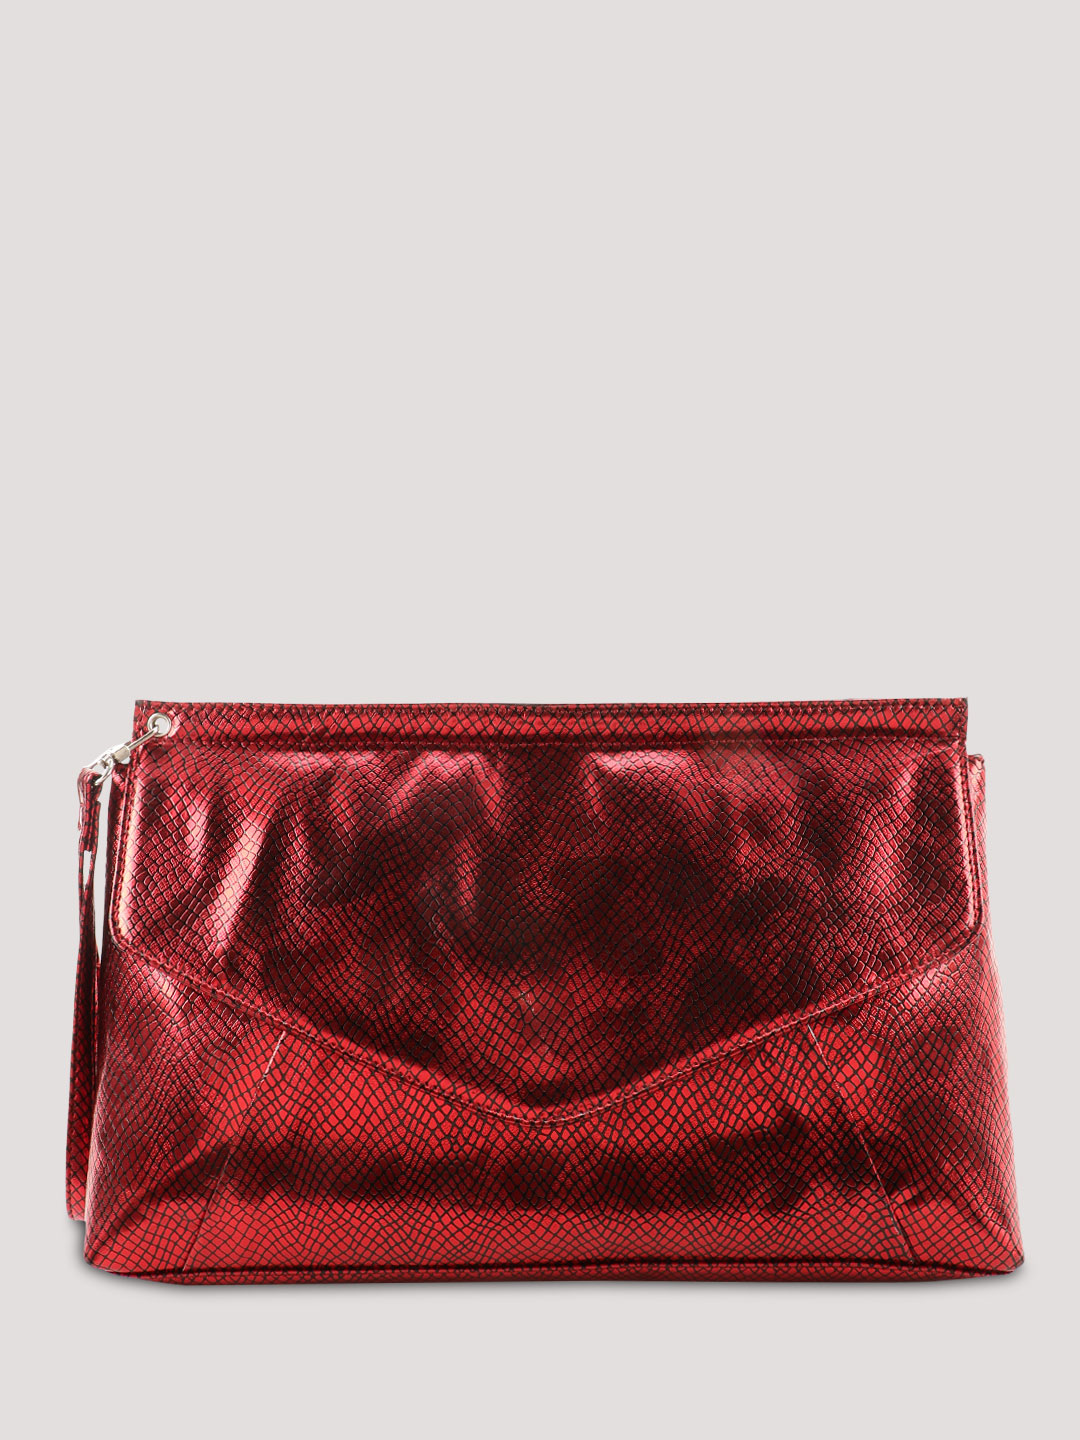 KOOVS Red Envelope Clutch Bag 1